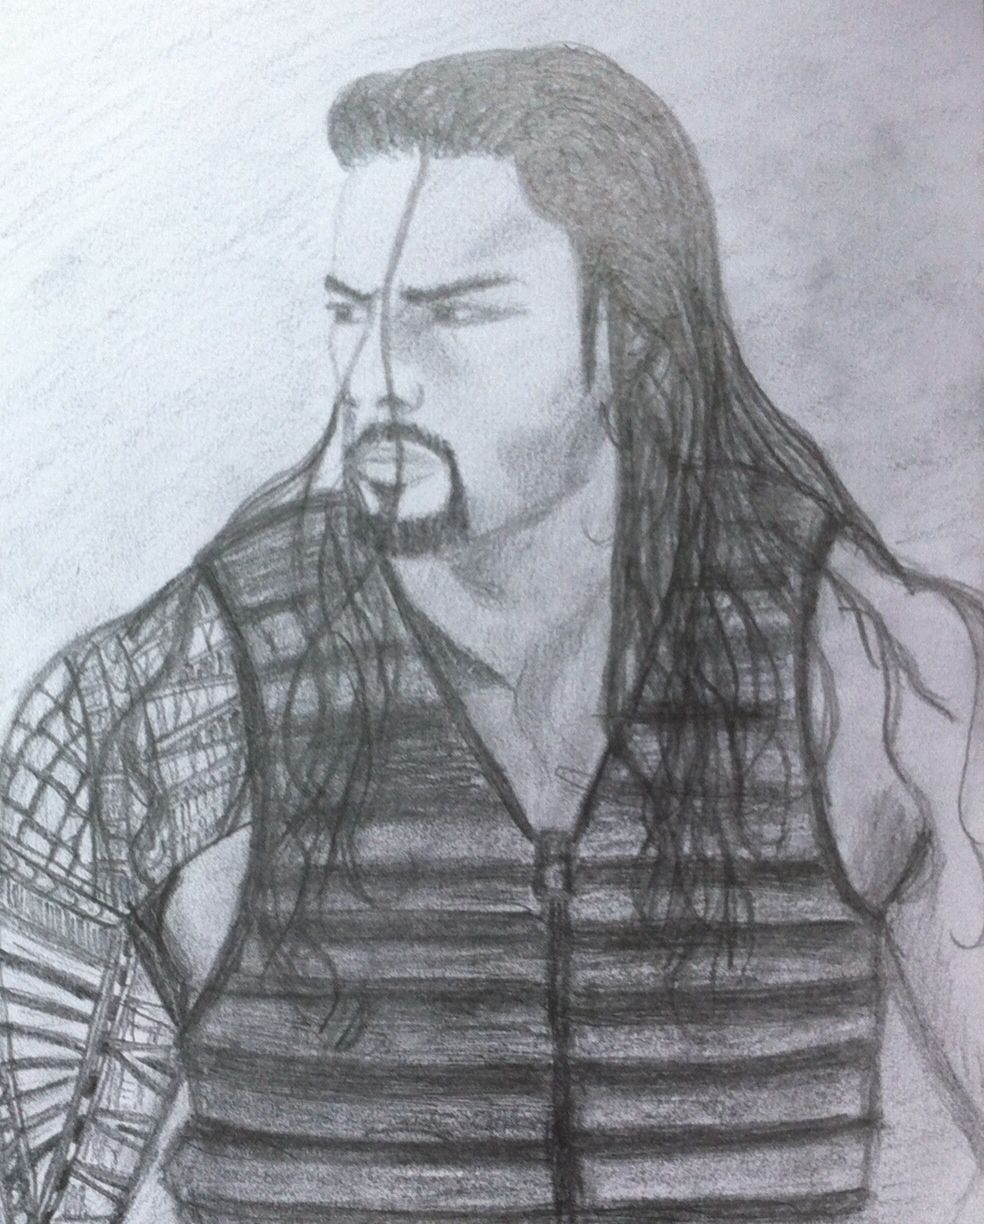 My drawing of the gorgeous roman not perfect but my best attempt